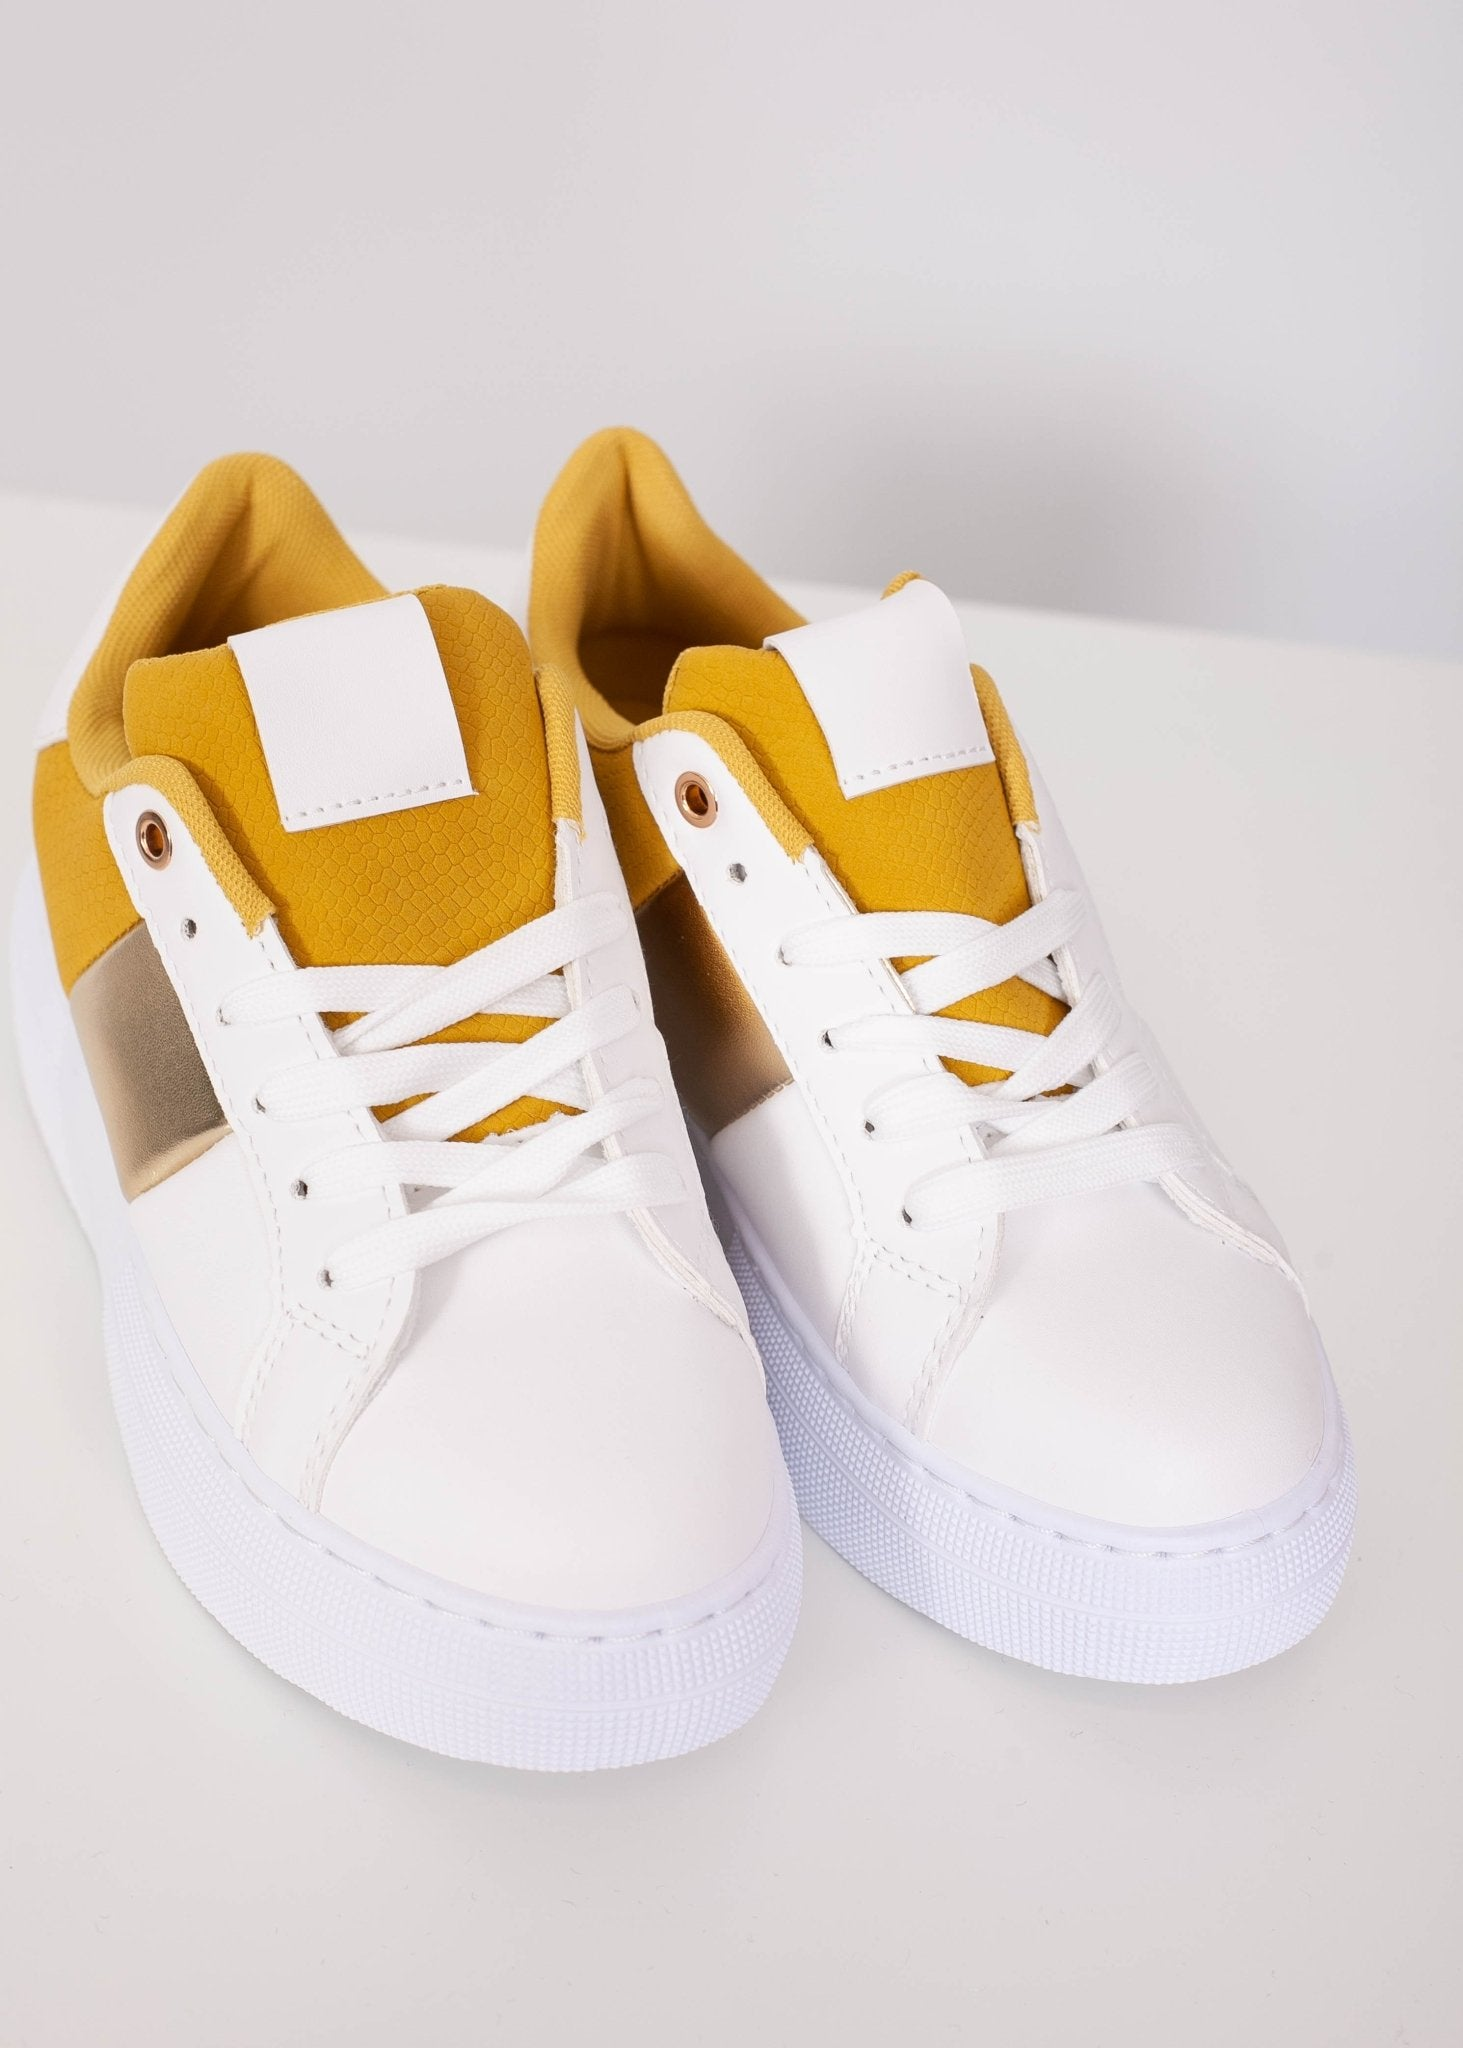 Priya Mustard Platform Trainers - The Walk in Wardrobe